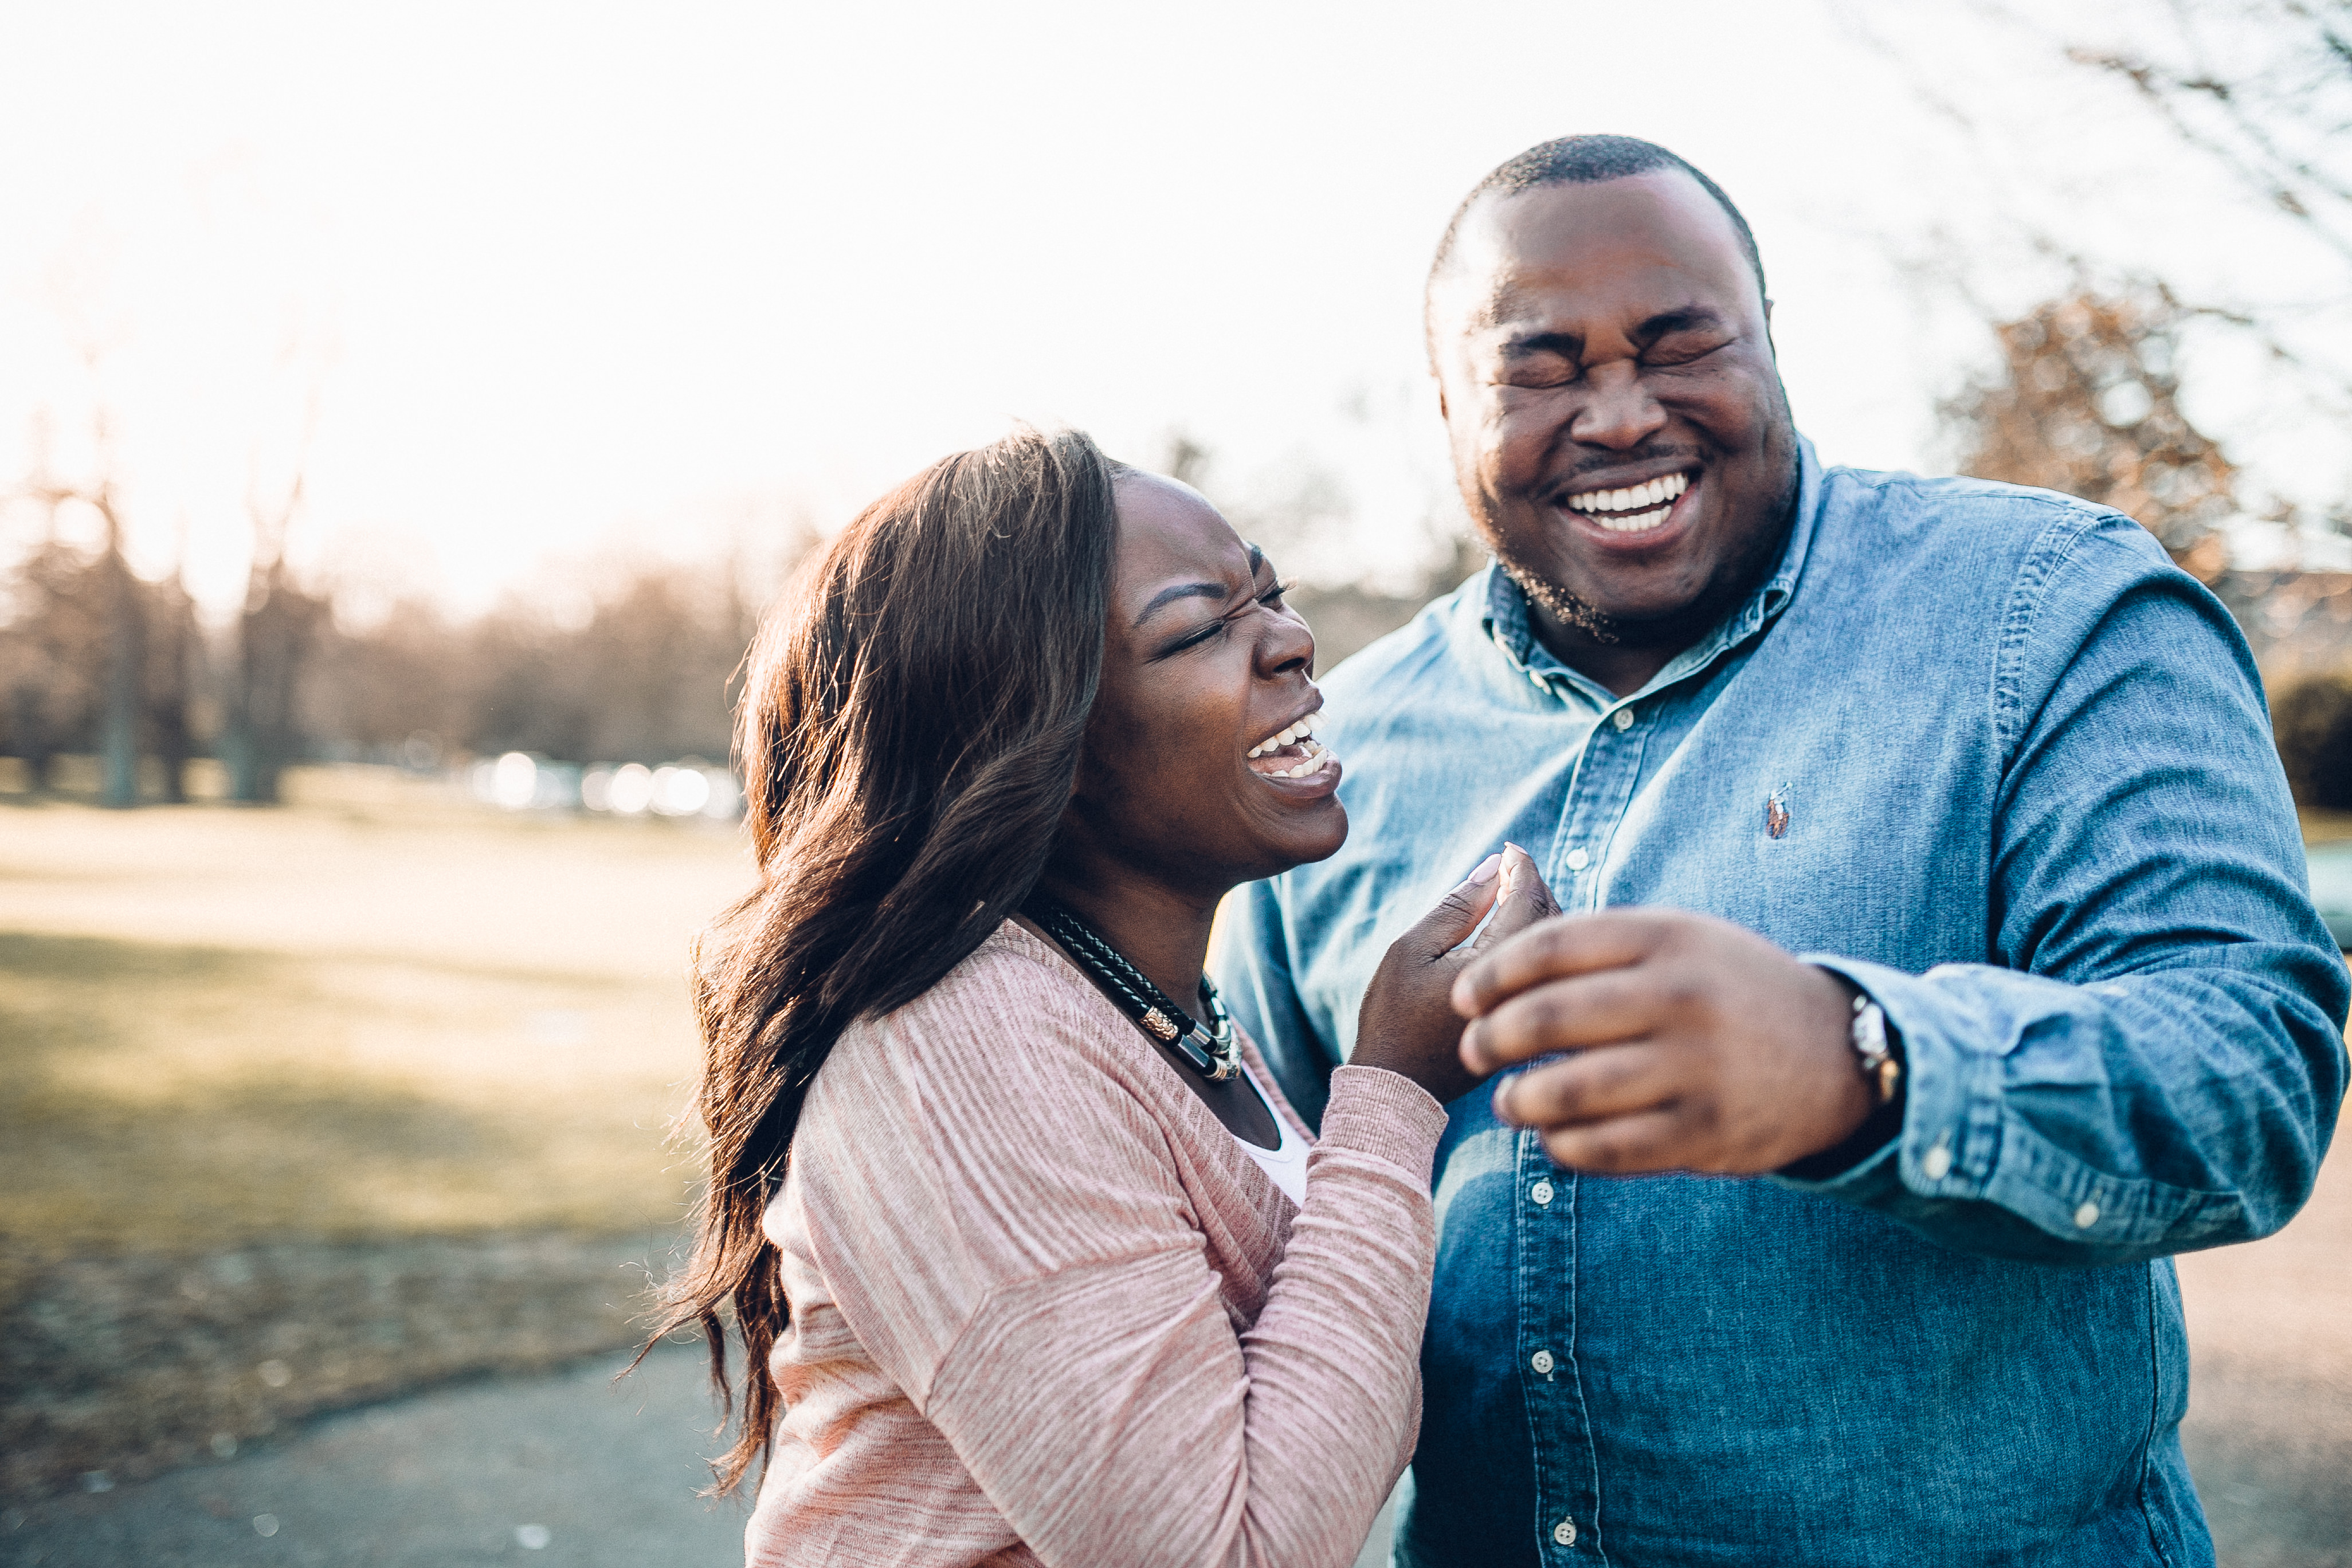 fun and relaxed engagement shoot at victoria park in bath uk by somerset wedding photographer beatrici